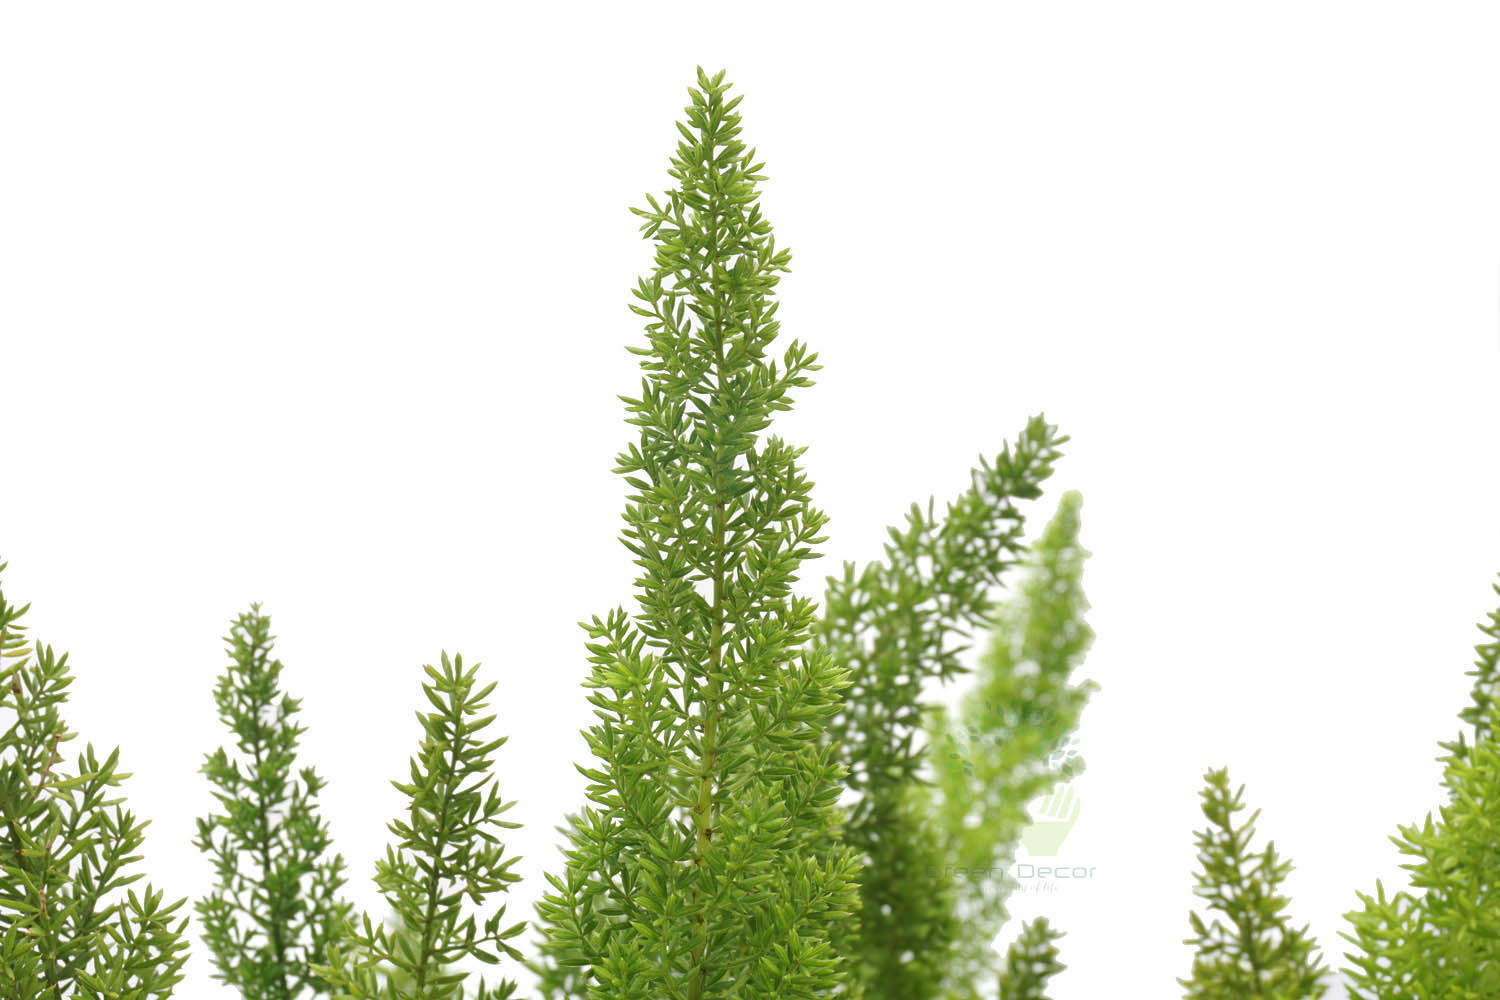 Buy Foxtail Fern Plants , White Pots and seeds in Delhi NCR by the best online nursery shop Greendecor.